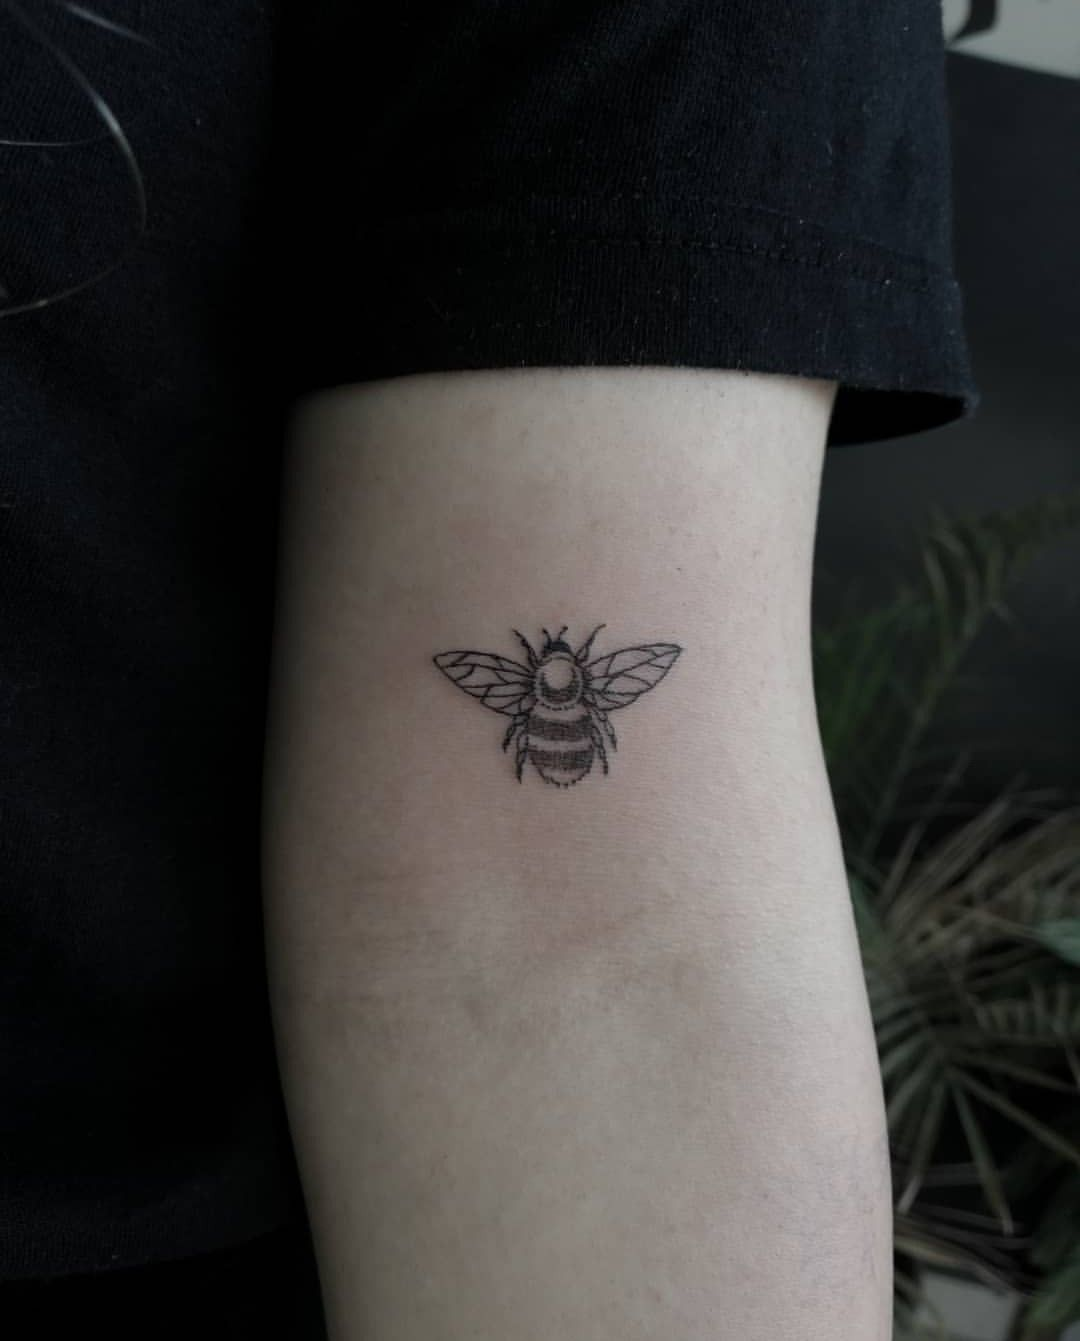 Bee tattoo. Bumble bee small